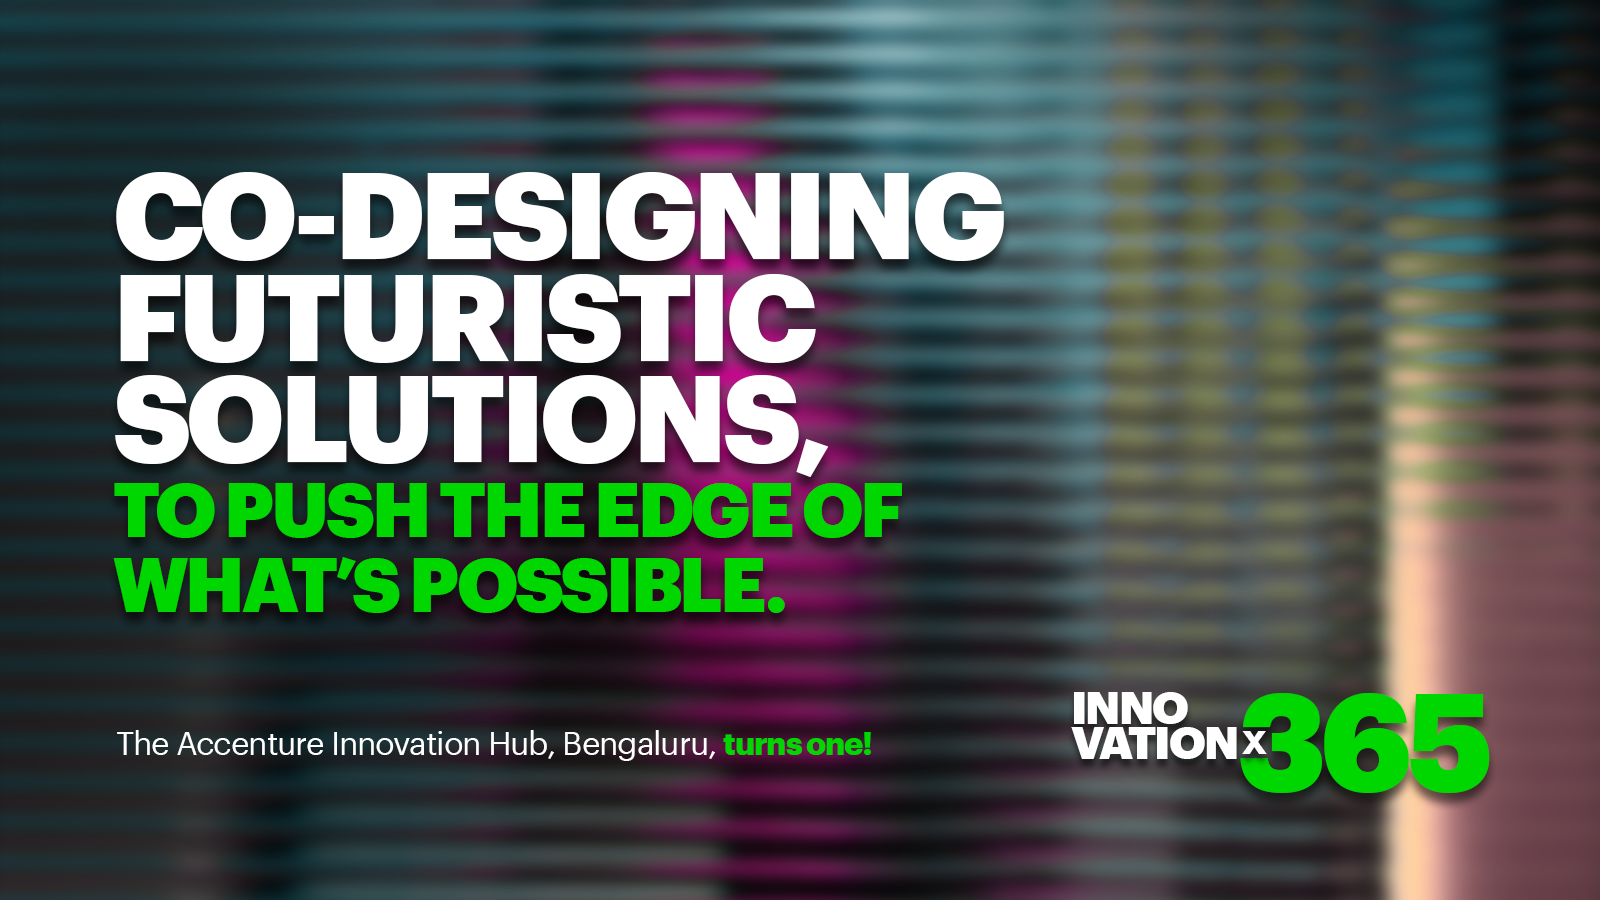 Co-designing futuristic solutions, to push the edge of what's impossible.